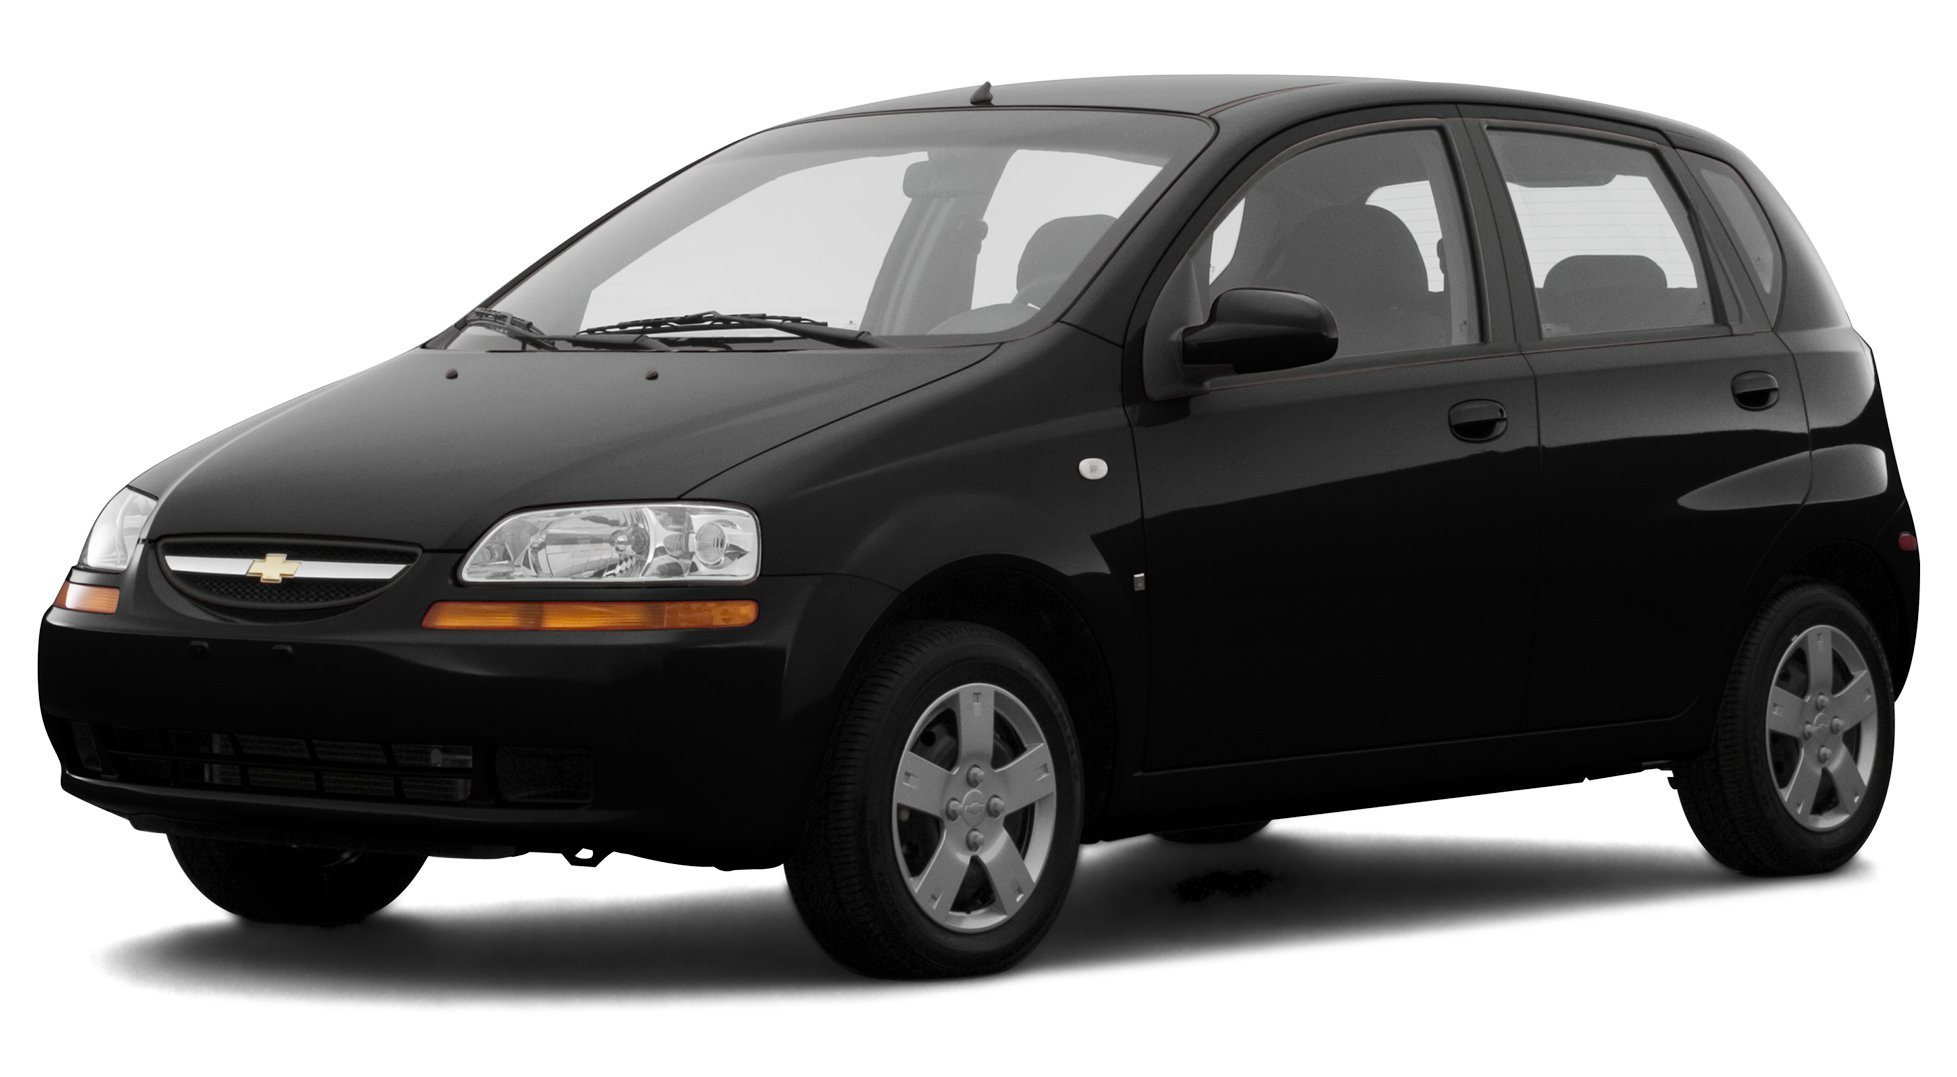 ... Manual Transmission, 2007 Chevrolet Aveo5 LS, 5-Door Hatchback